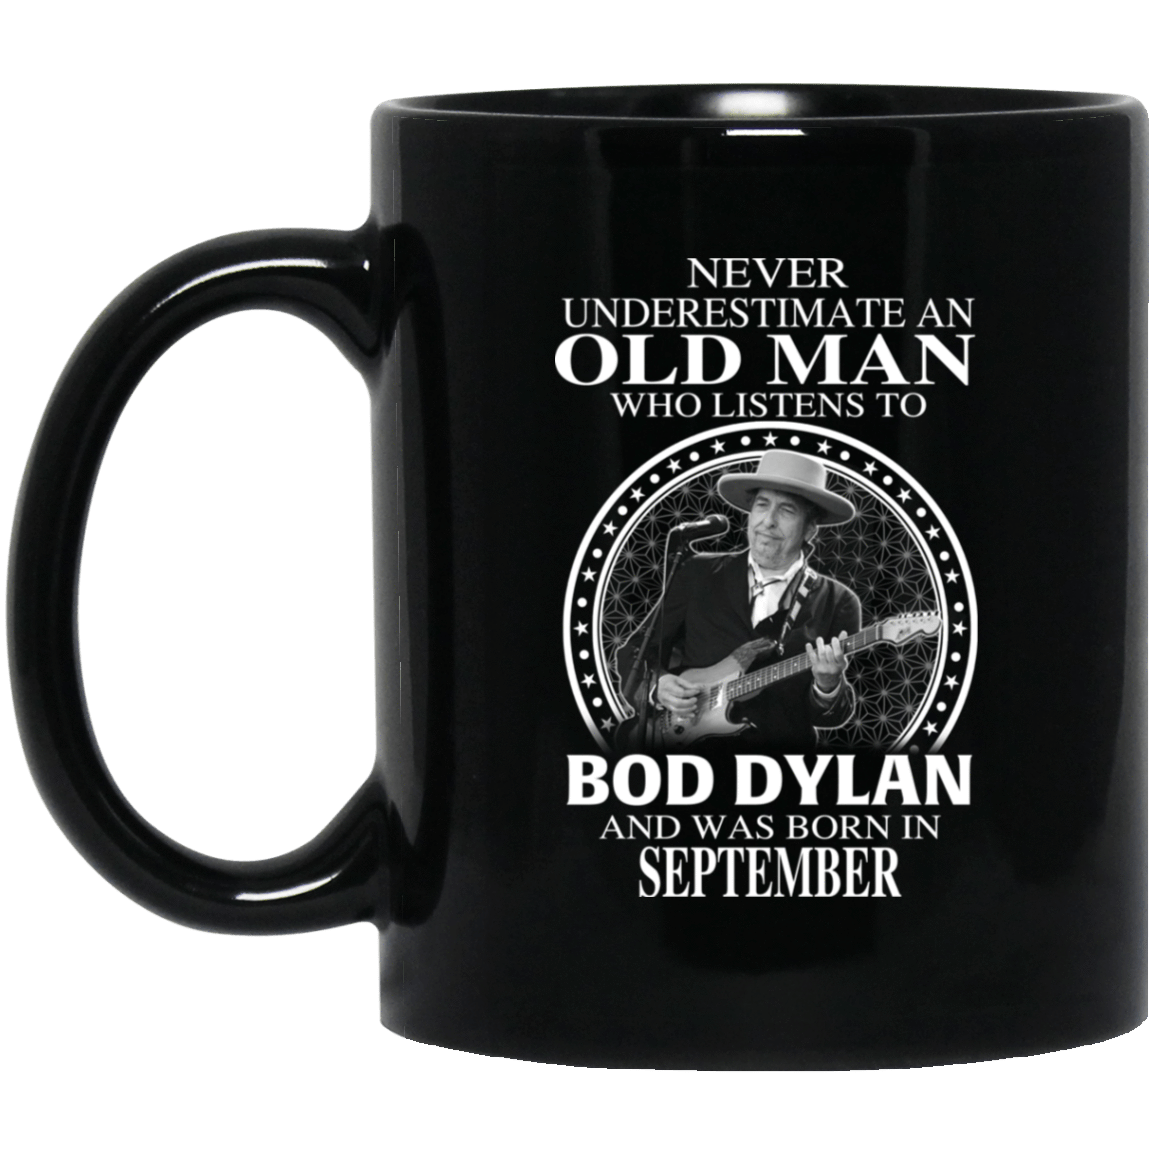 An Old Man Who Listens To Bob Dylan And Was Born In September Mug 1065-10181-76154379-49307 - Tee Ript